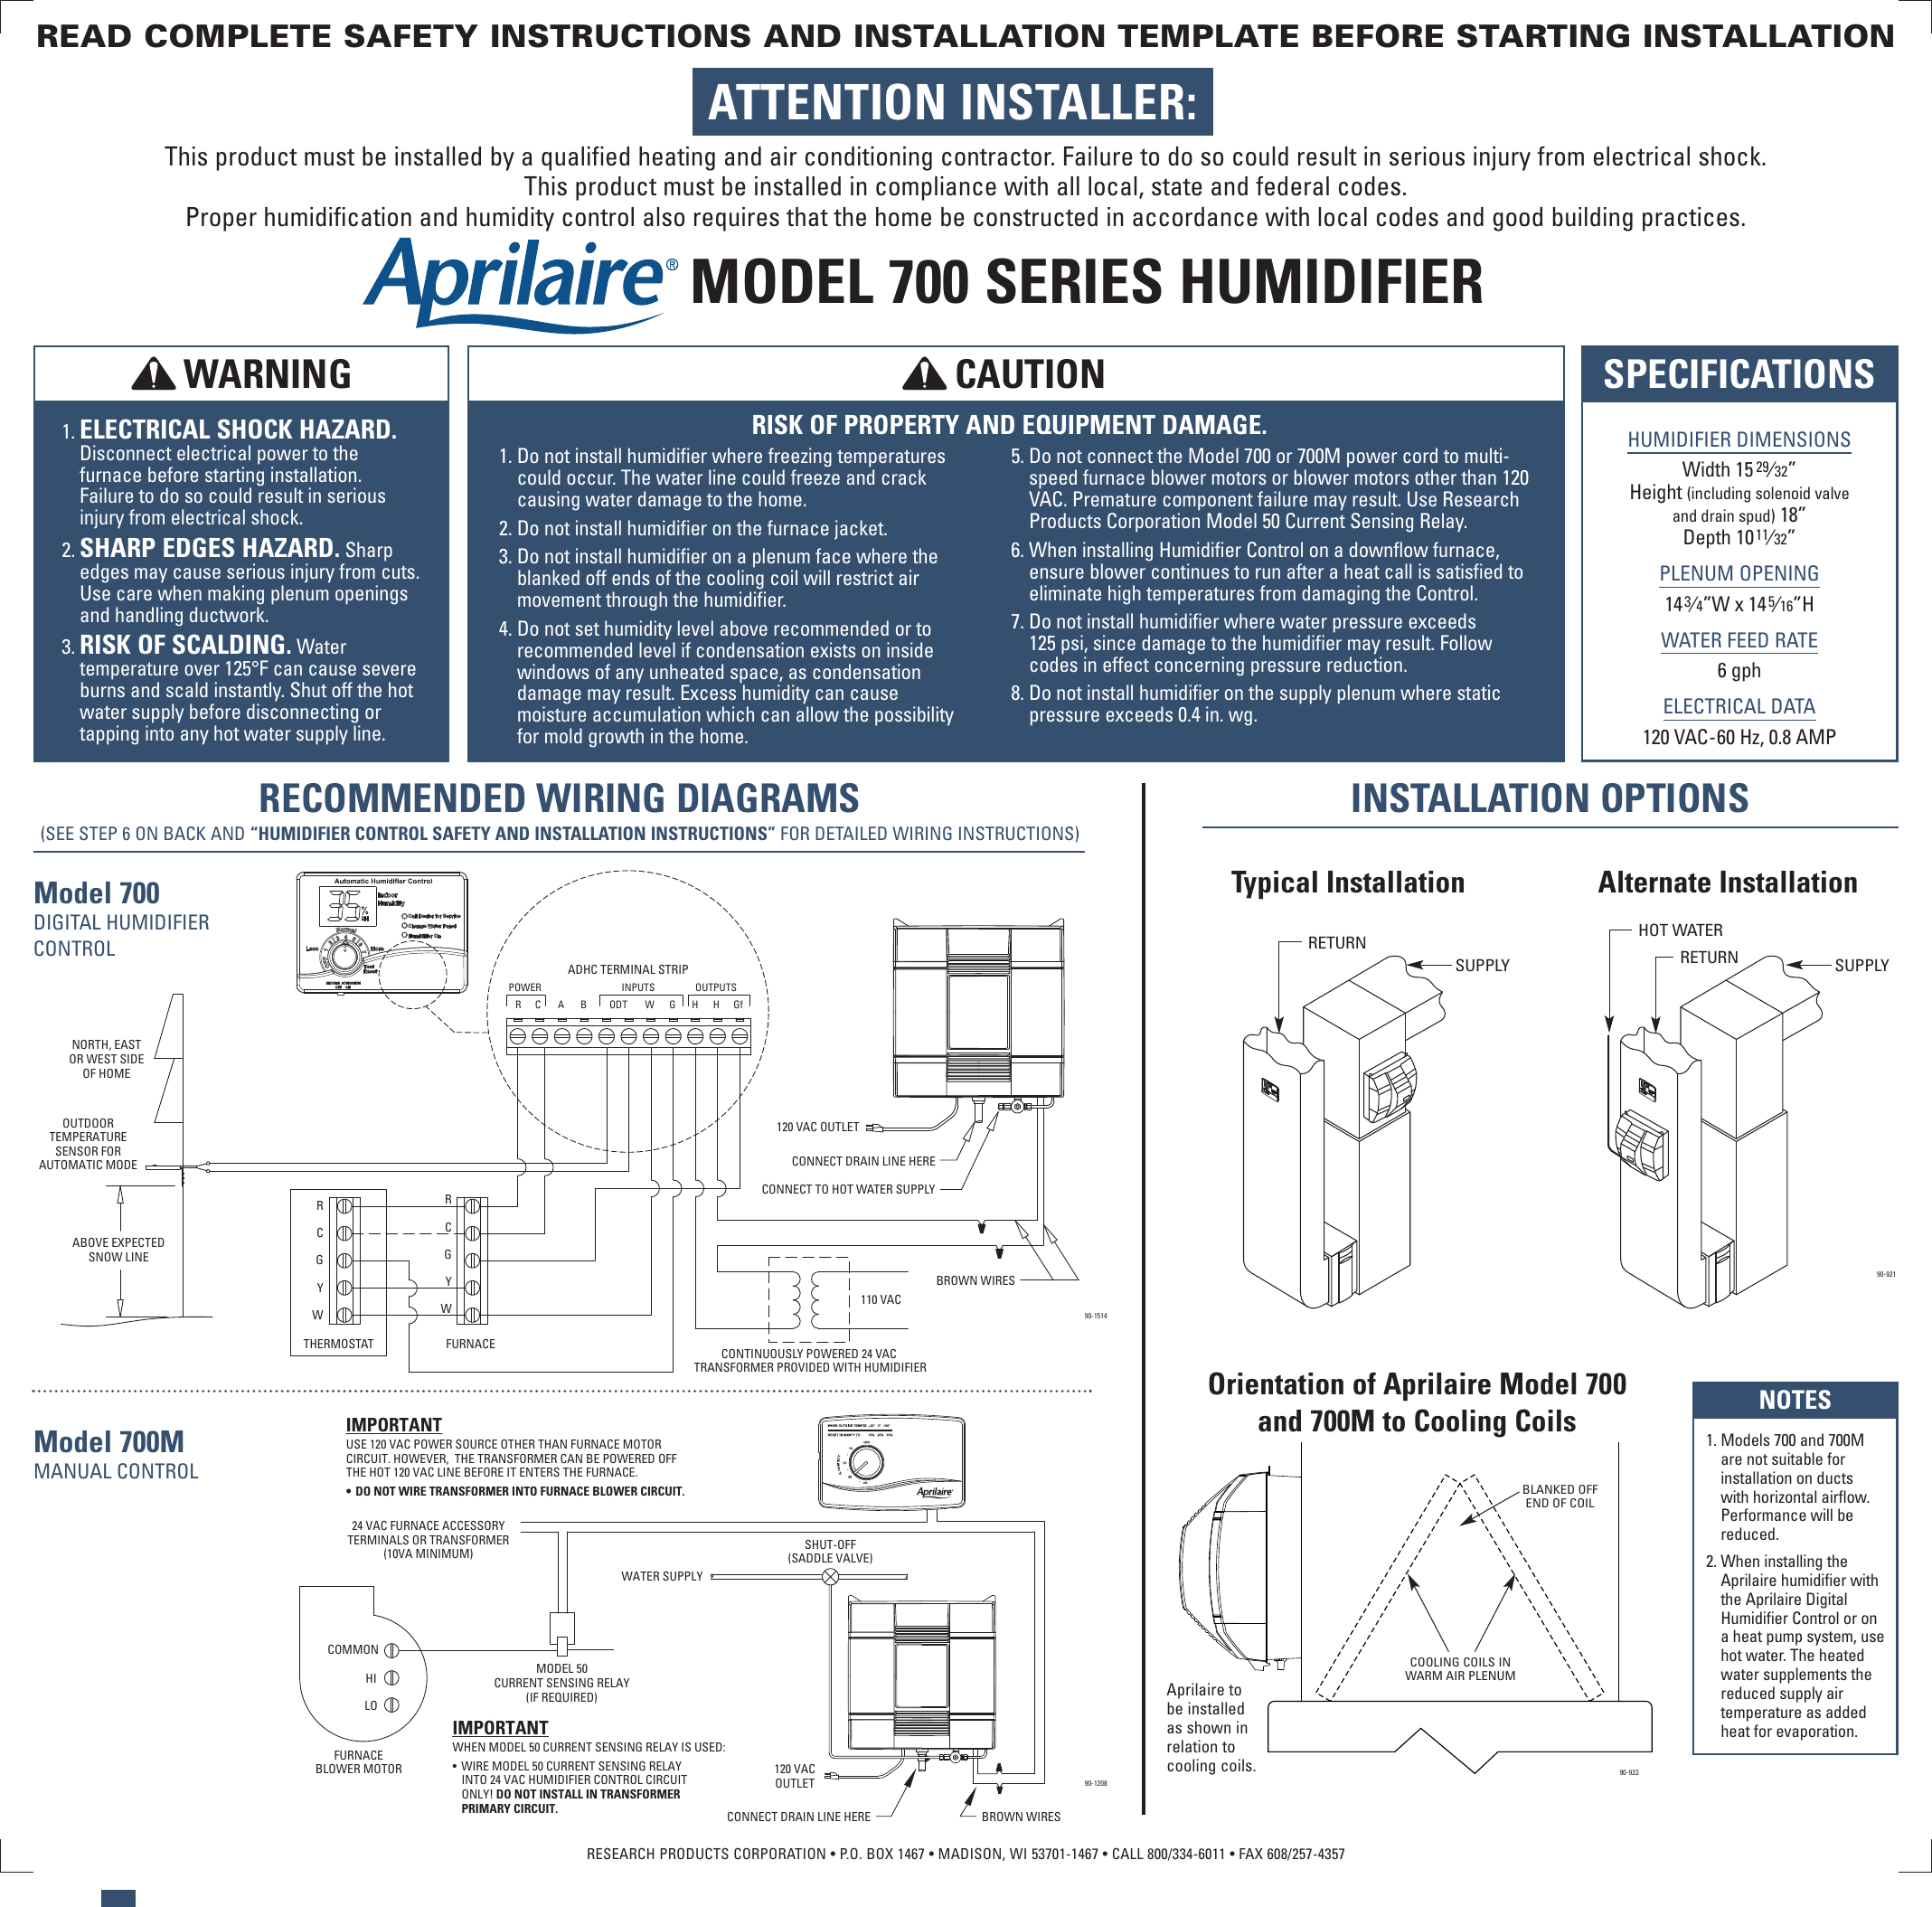 Aprilaire Humidifier 700 Users Manual 10008976a Aa To Furnace Wiring Diagram